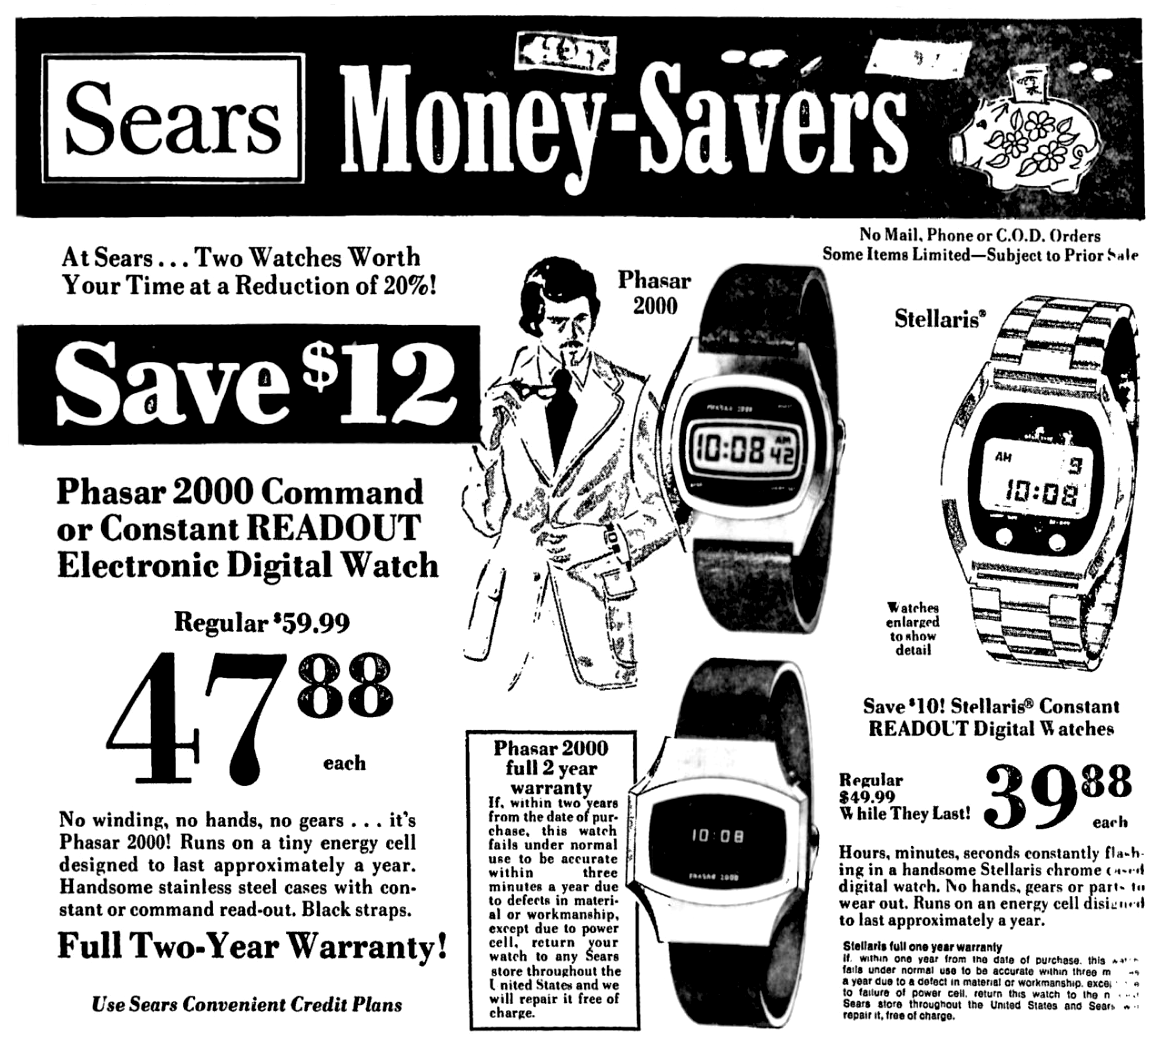 Sears Stellaris and Phasar 2000 Watches - September 1976